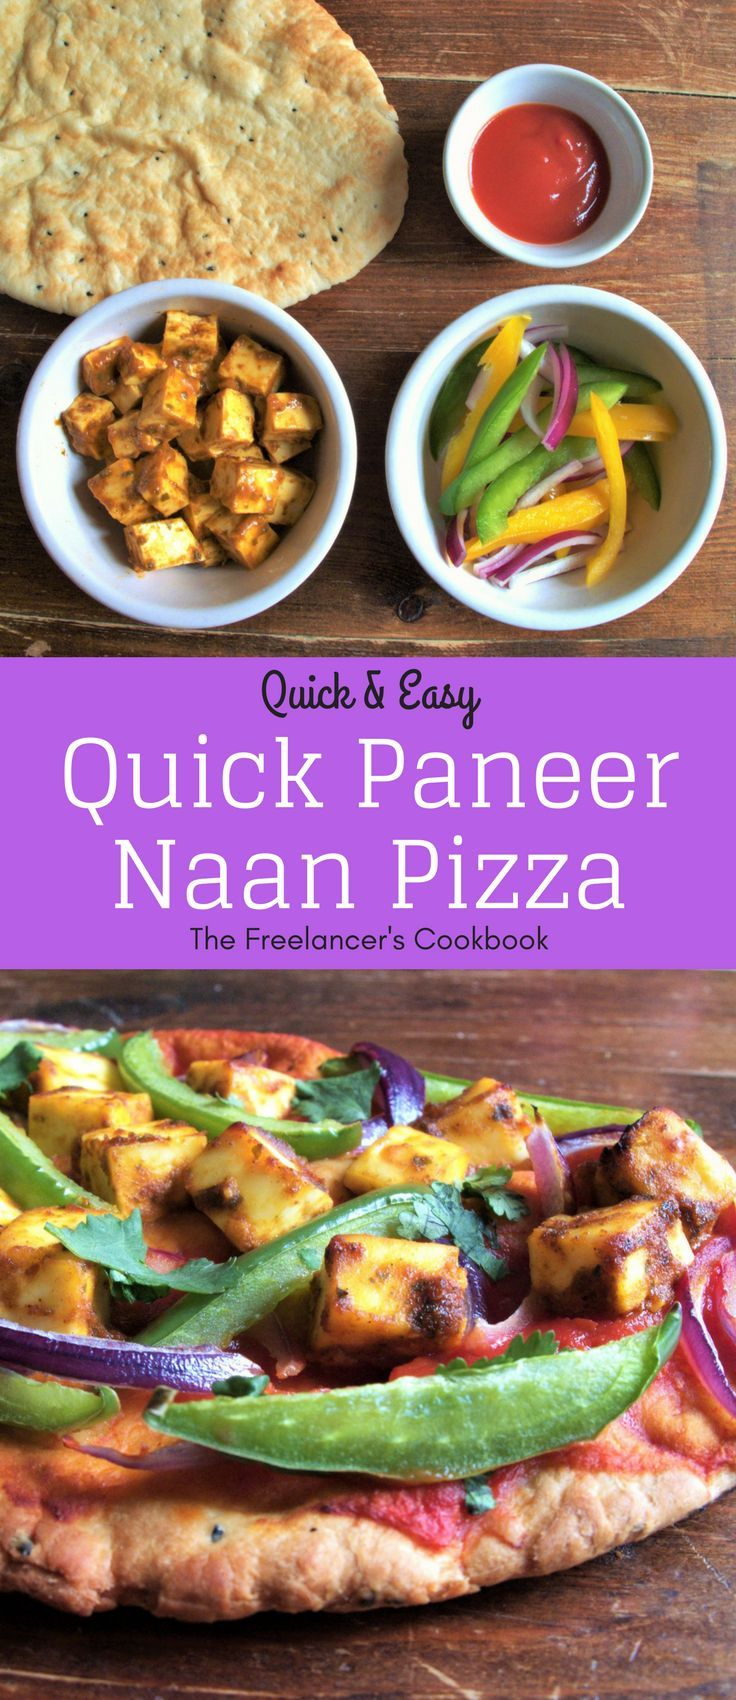 A super easy, quick recipe that's perfect for lunch or a midweek dinner. It's vegetarian, containing Indian paneer cheese, spicy balti curry paste, lemon juice, red onion, pepper, passata and naan bread.